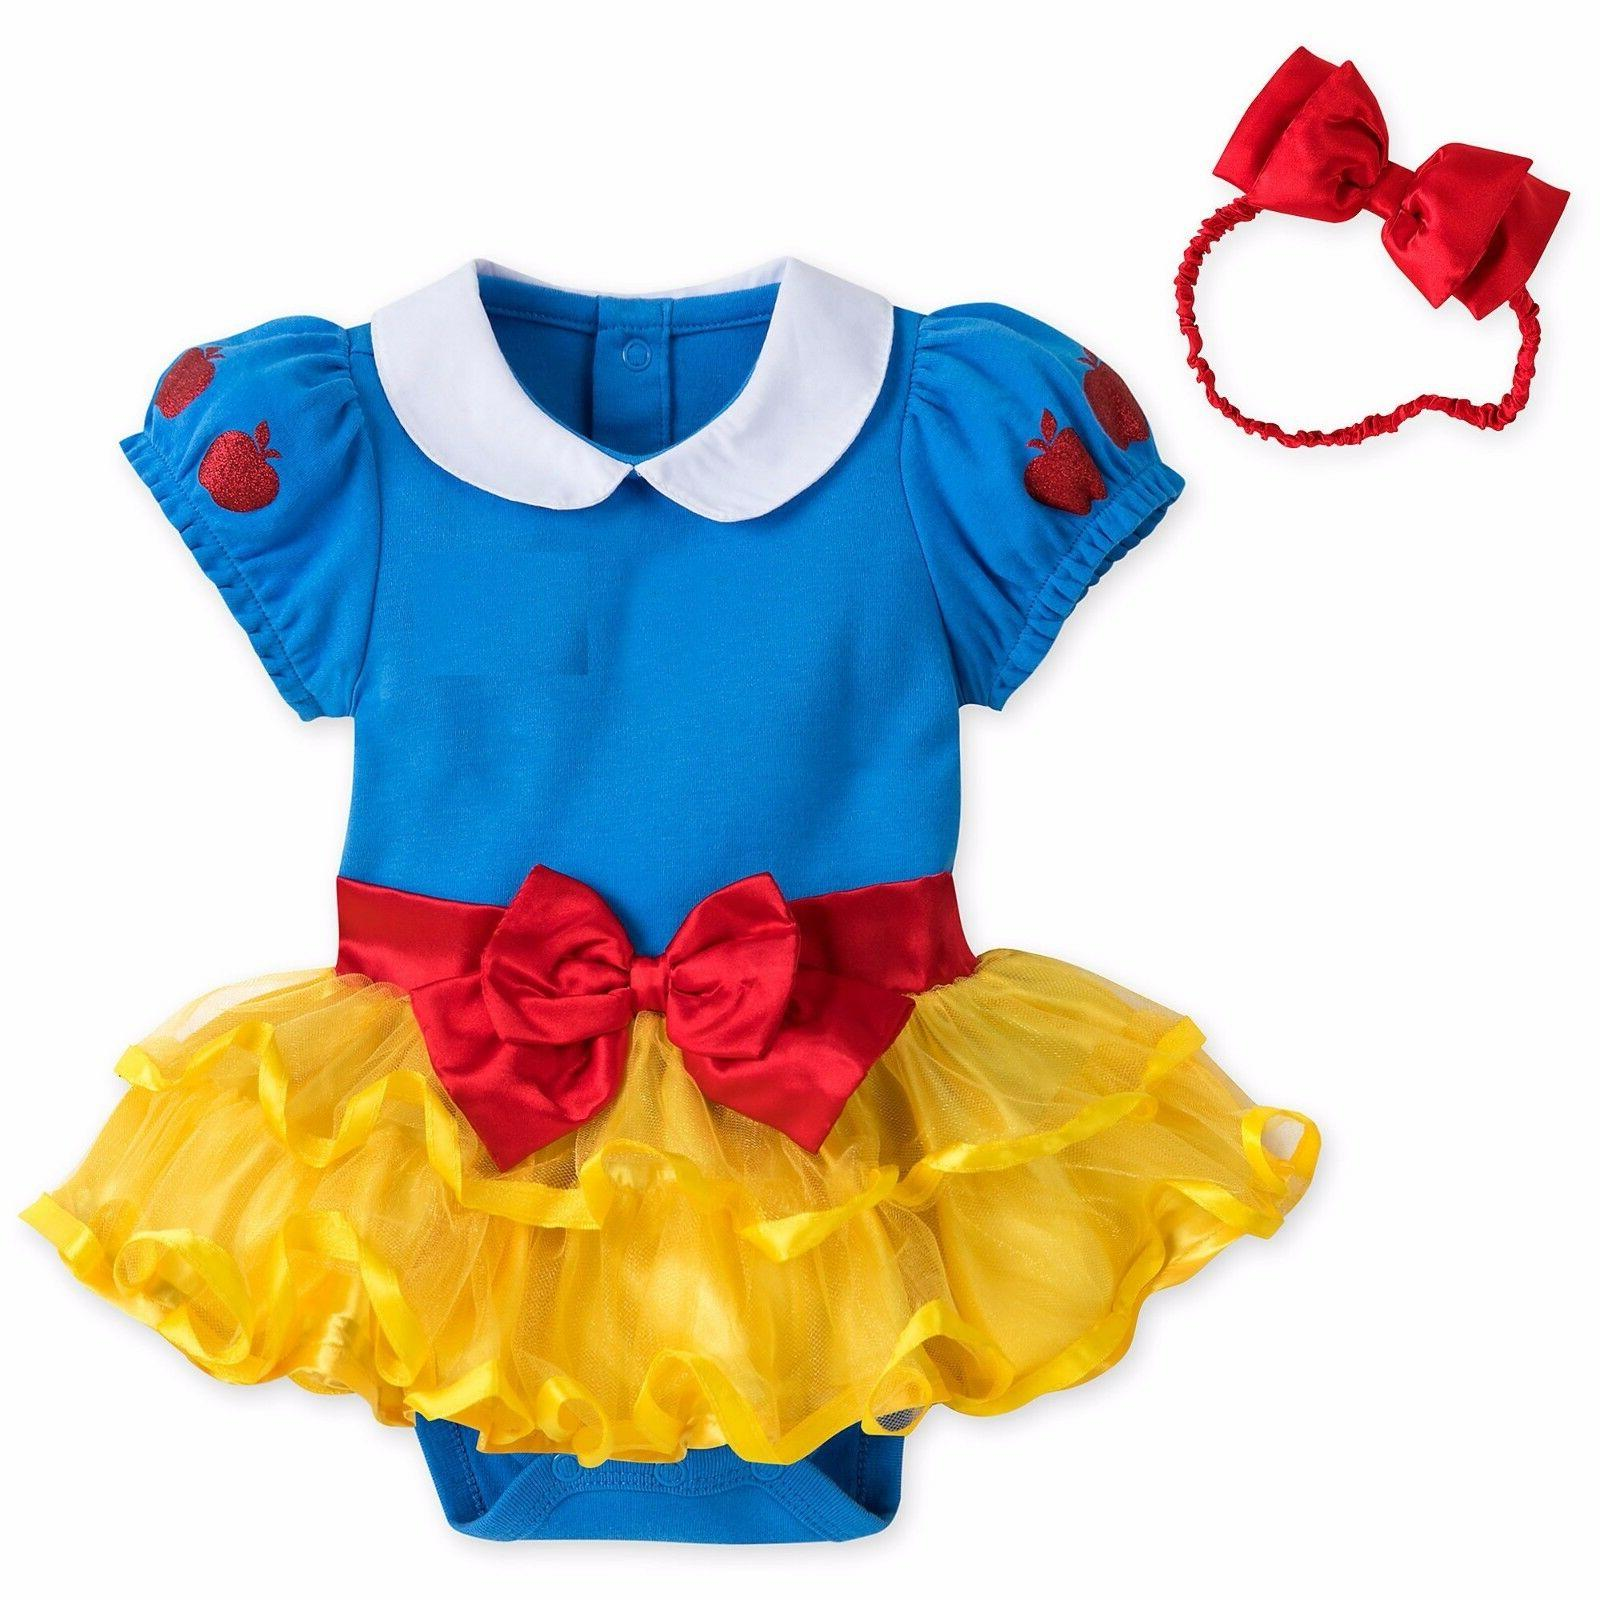 disney snow white baby costume outfit